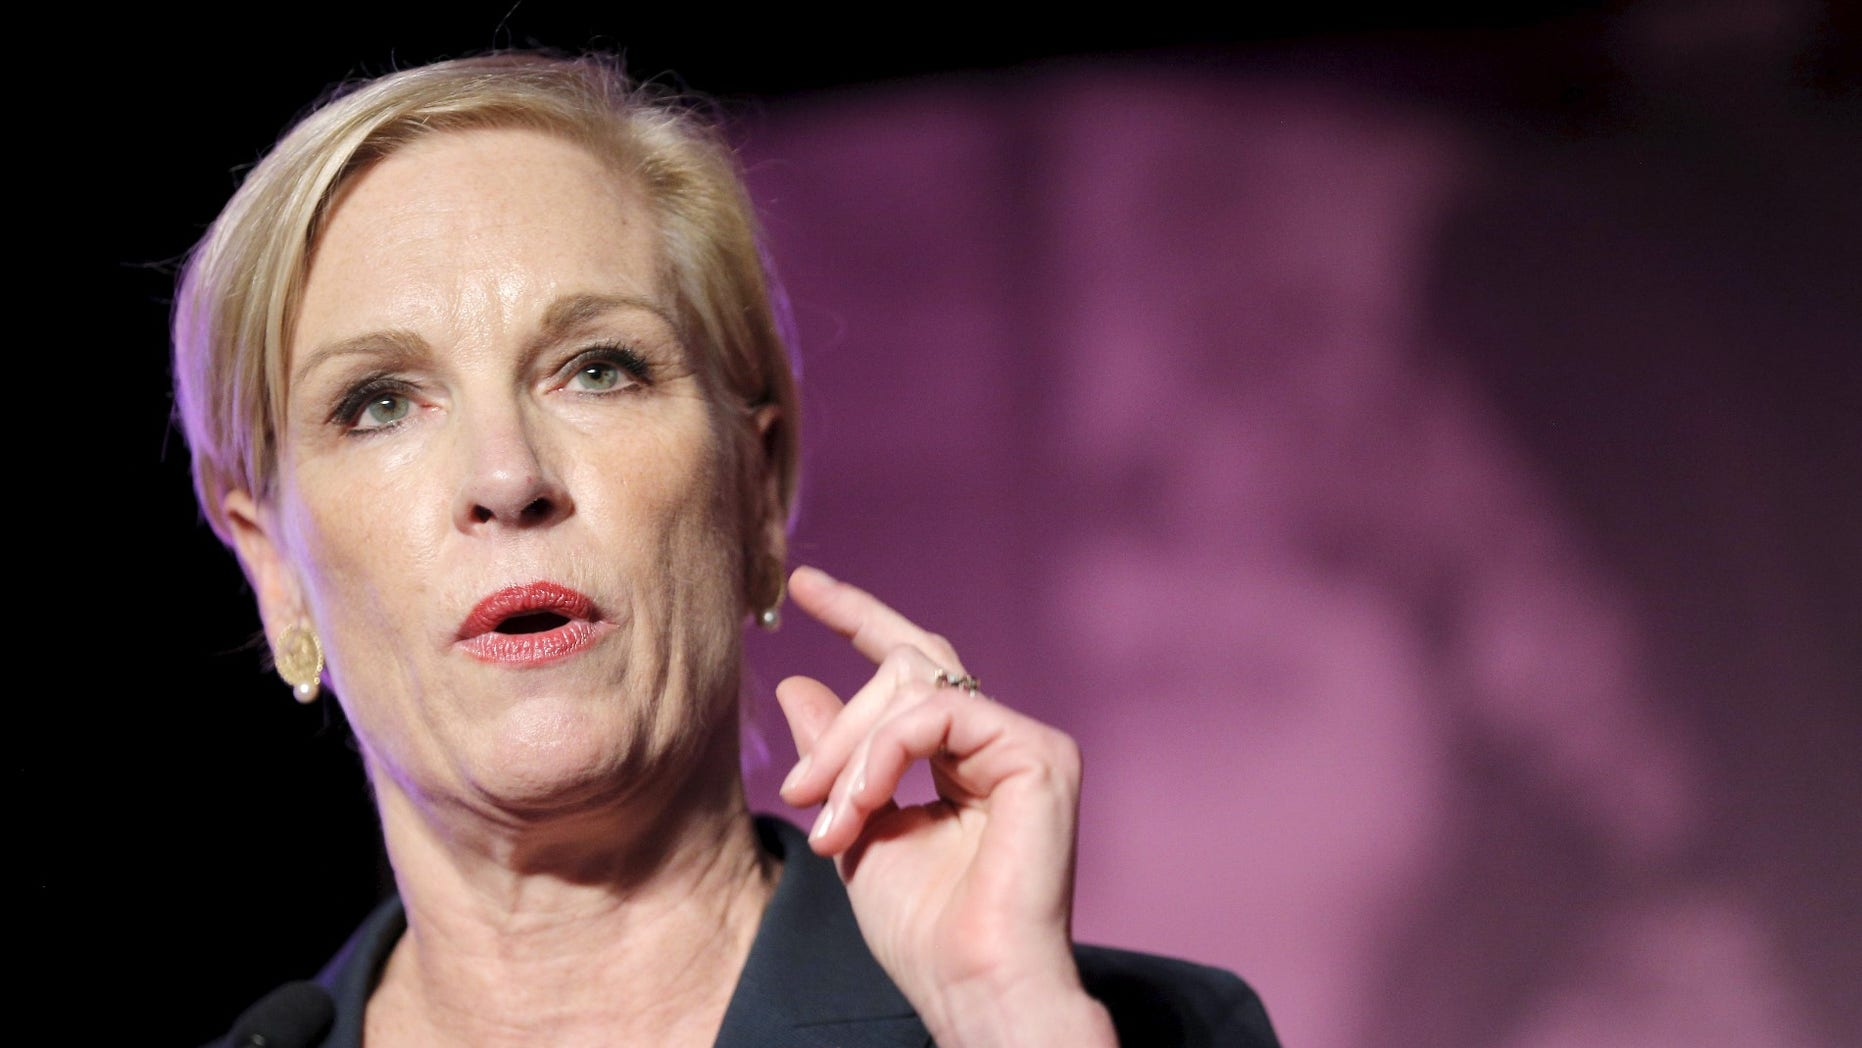 FILE -- Planned Parenthood Action Fund President Cecile Richards speaks at an event to publicly endorse U.S. Democratic presidential candidate Hillary Clinton in Hooksett, New Hampshire, January 10, 2016.